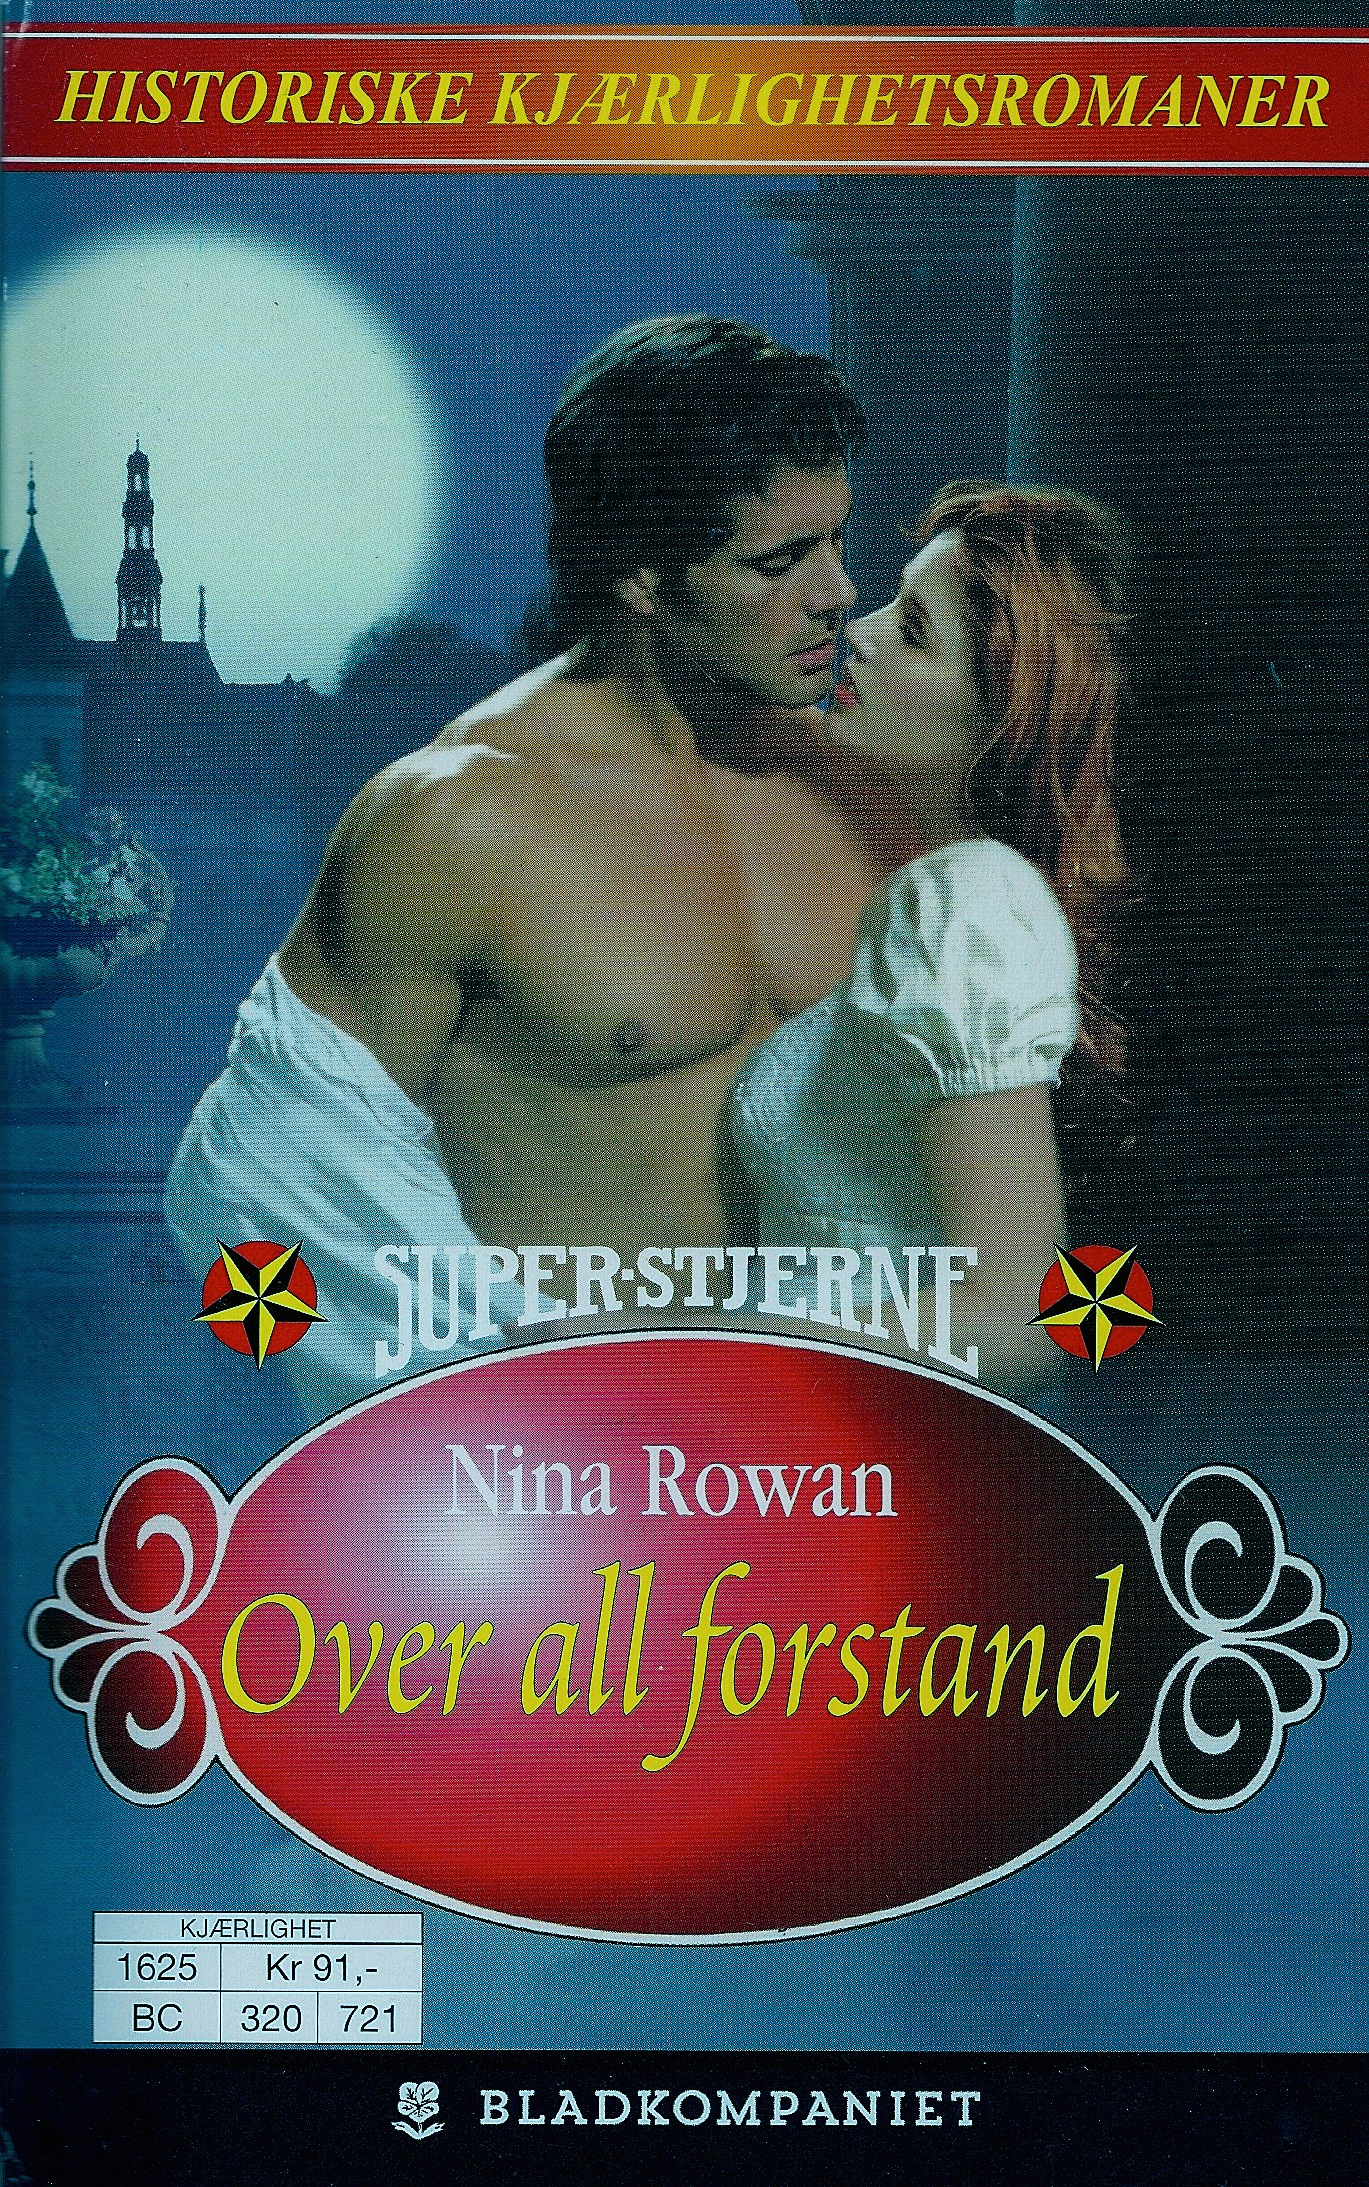 Rowan-Seduction-Norwegian